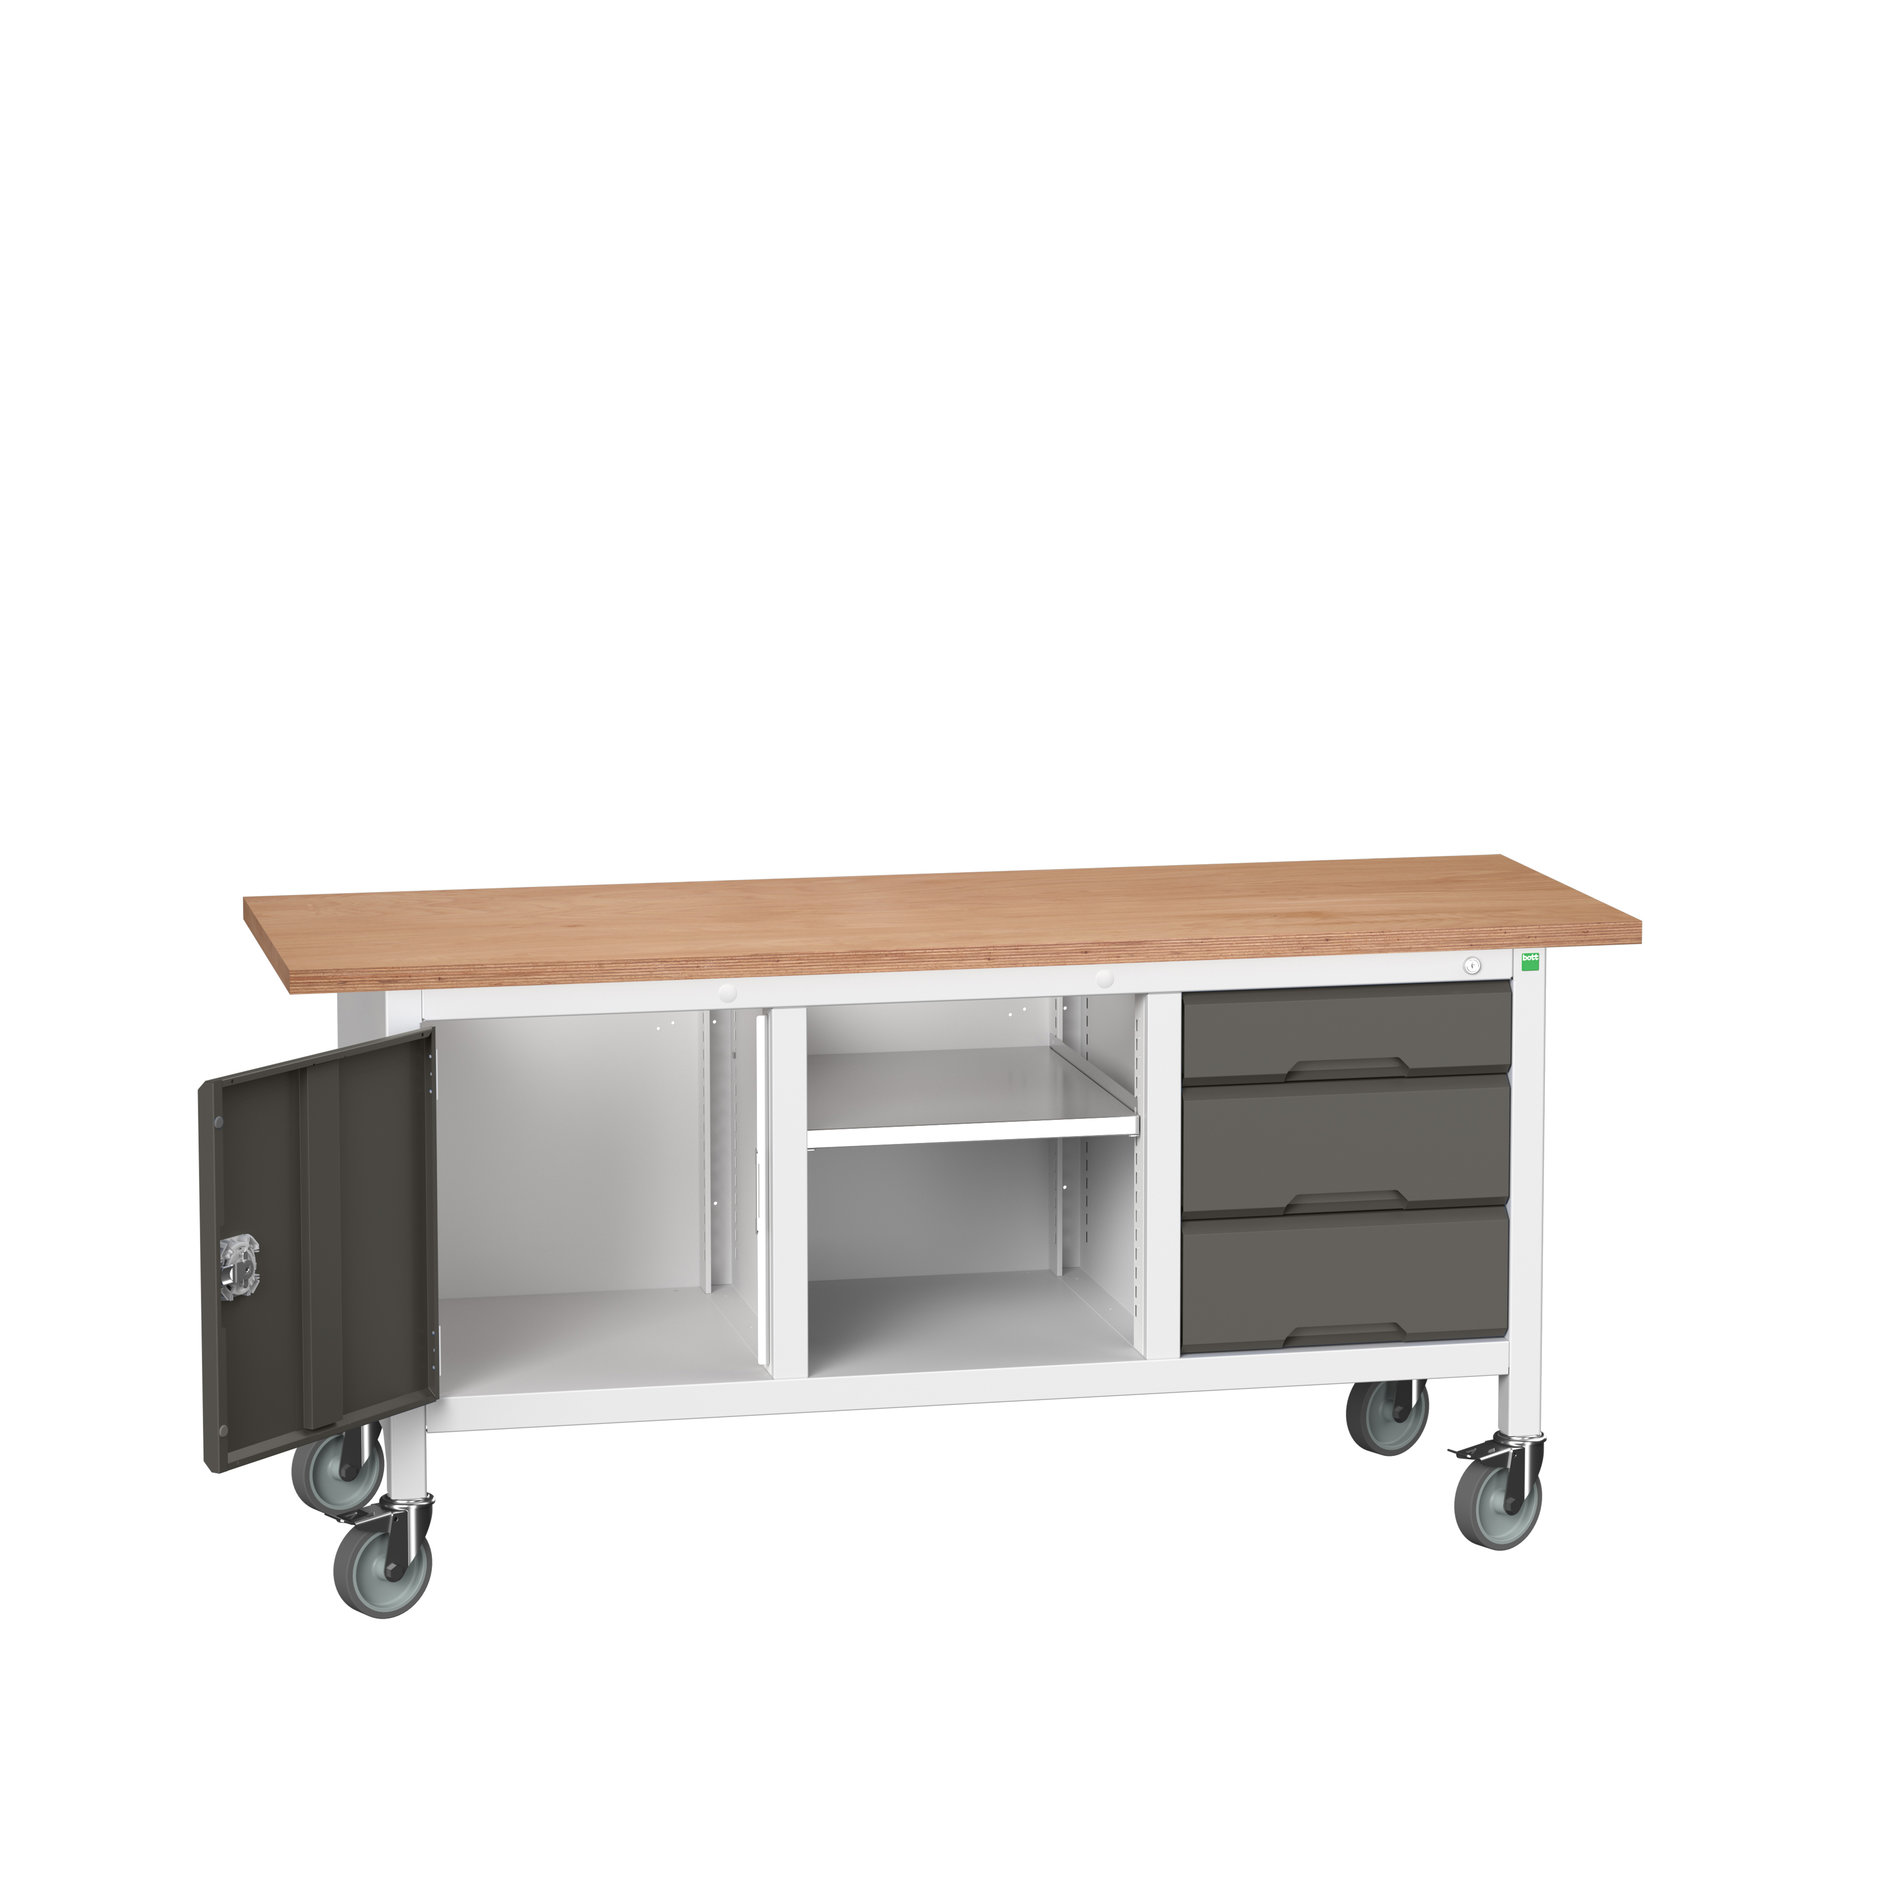 Bott Verso Mobile Storage Bench With Full Cupboard / Open Cupboard / 3 Drawer Cab